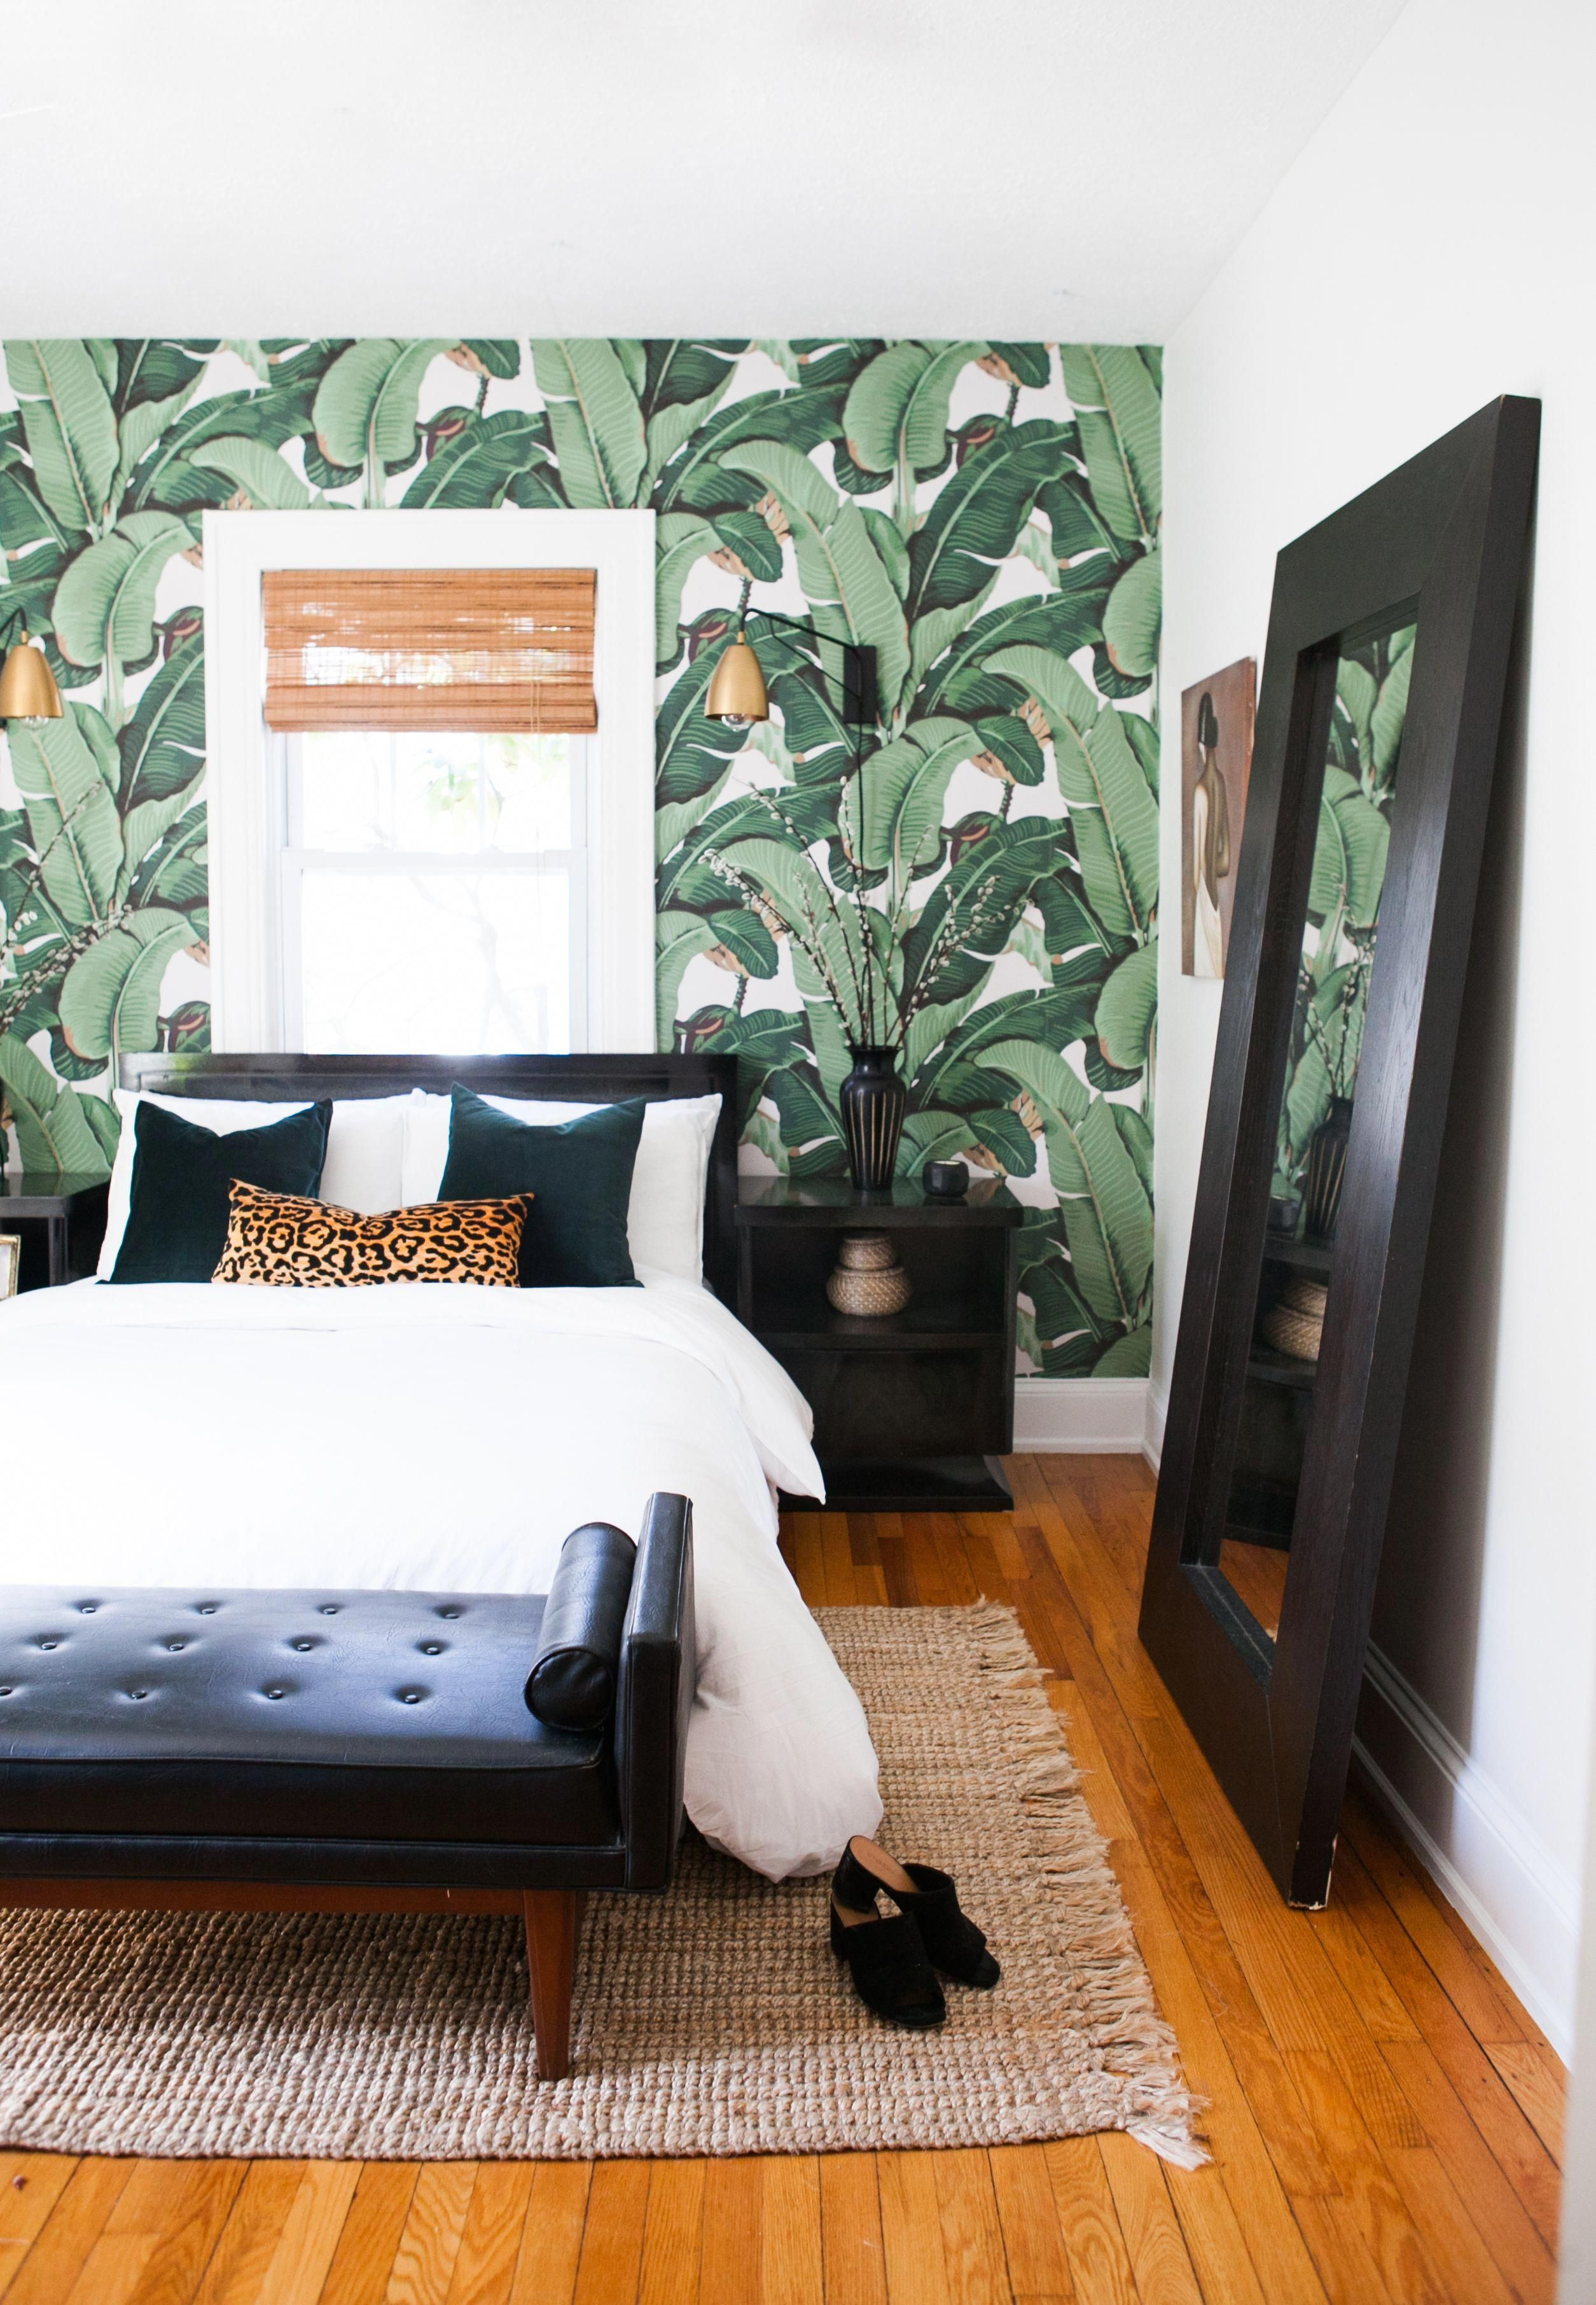 Removable banana leaf wallpaper from Etsy adds a tropical